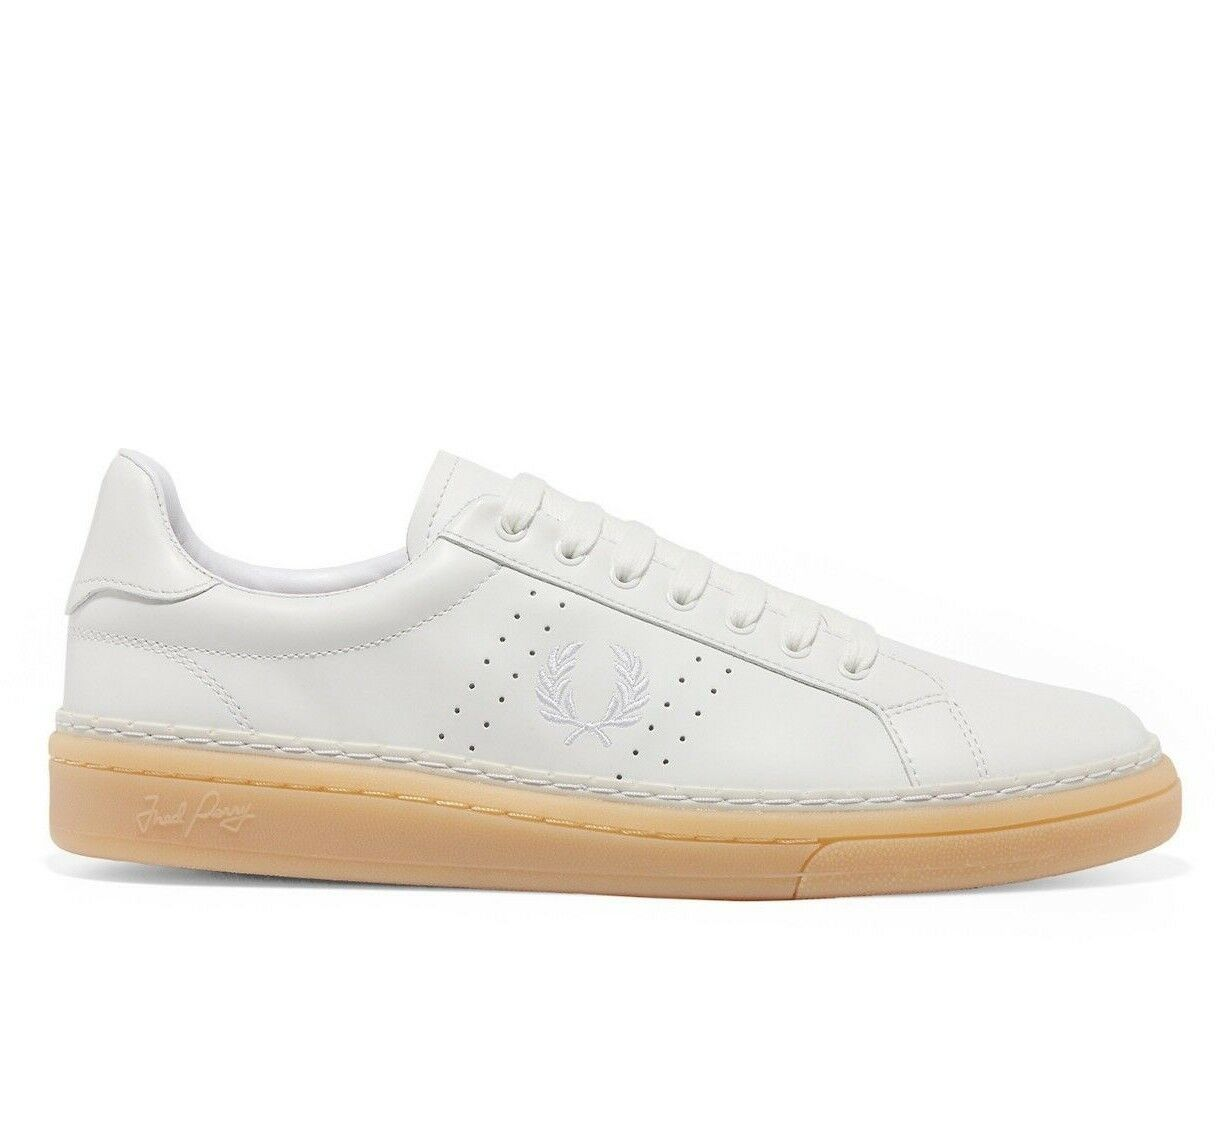 Frot Perry B721 High Shine Leather Men's Trainers schuhe B2085-100 - Weiß   | Online-Shop